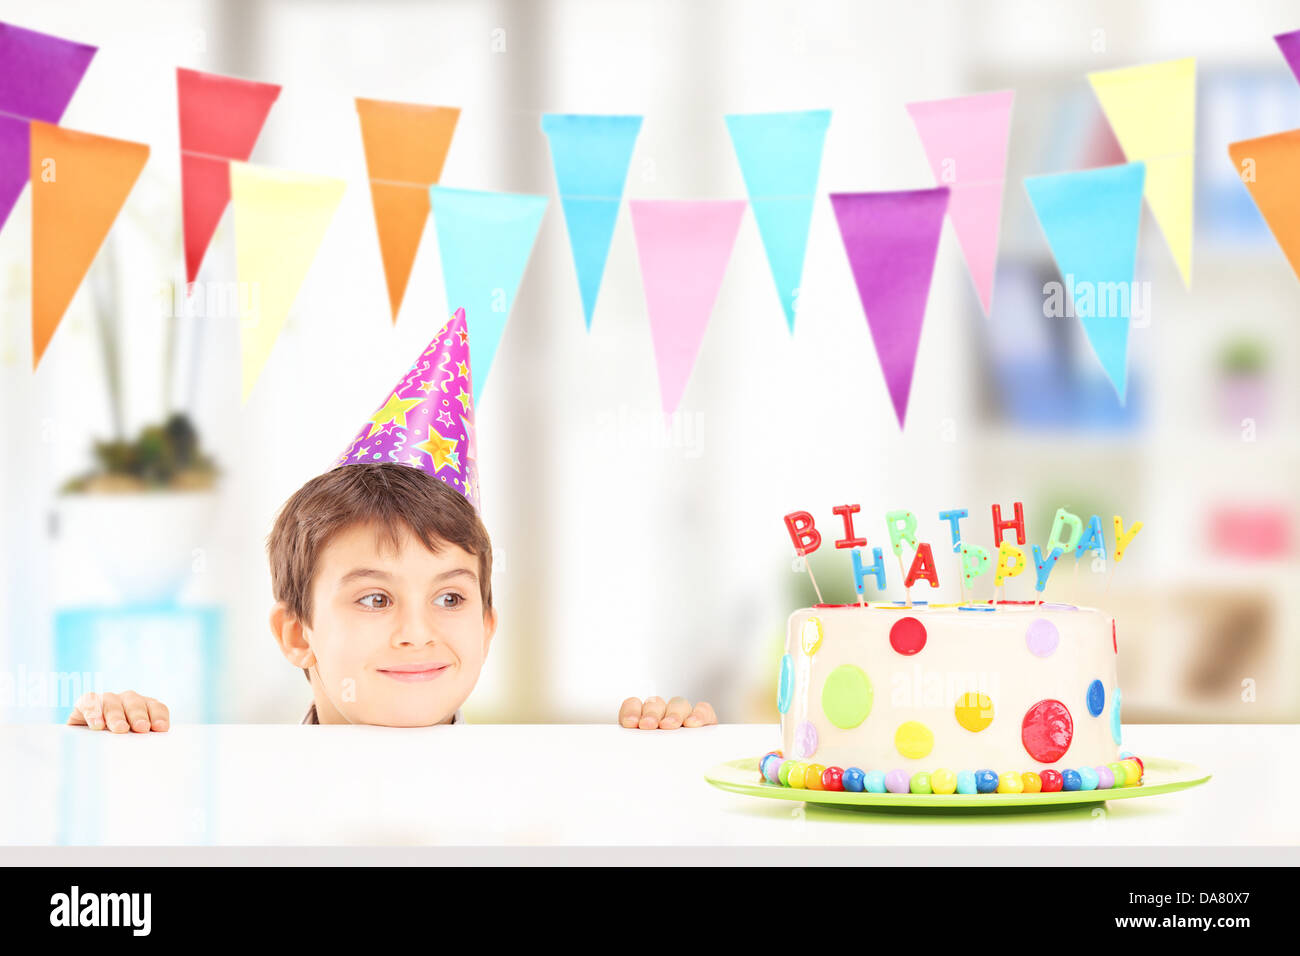 Smiling boy with party hat looking at a birthday cake - Stock Image